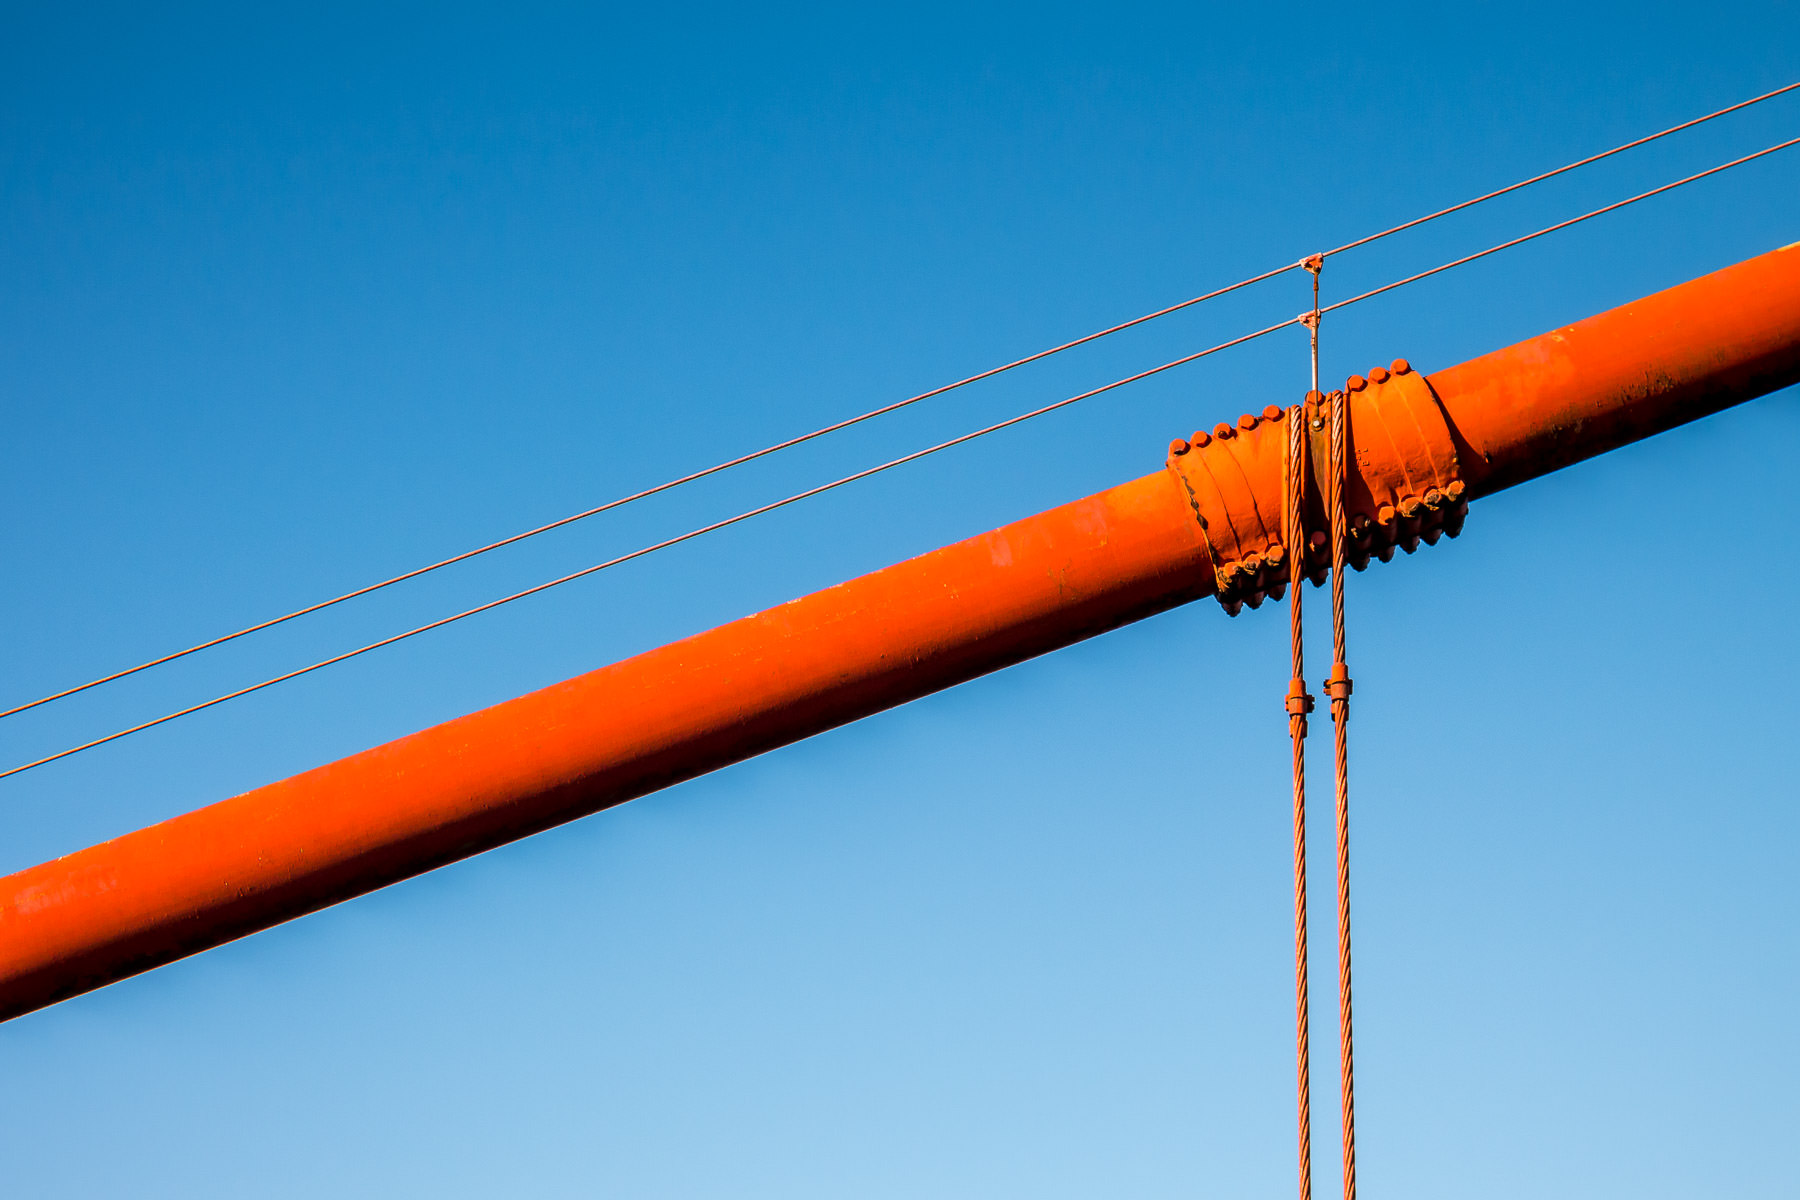 Detail of one of San Francisco's Golden Gate Bridge's main suspension cables. This cable is 36.5-inches-wide (93 cm) and contains 27,572 individual wires.